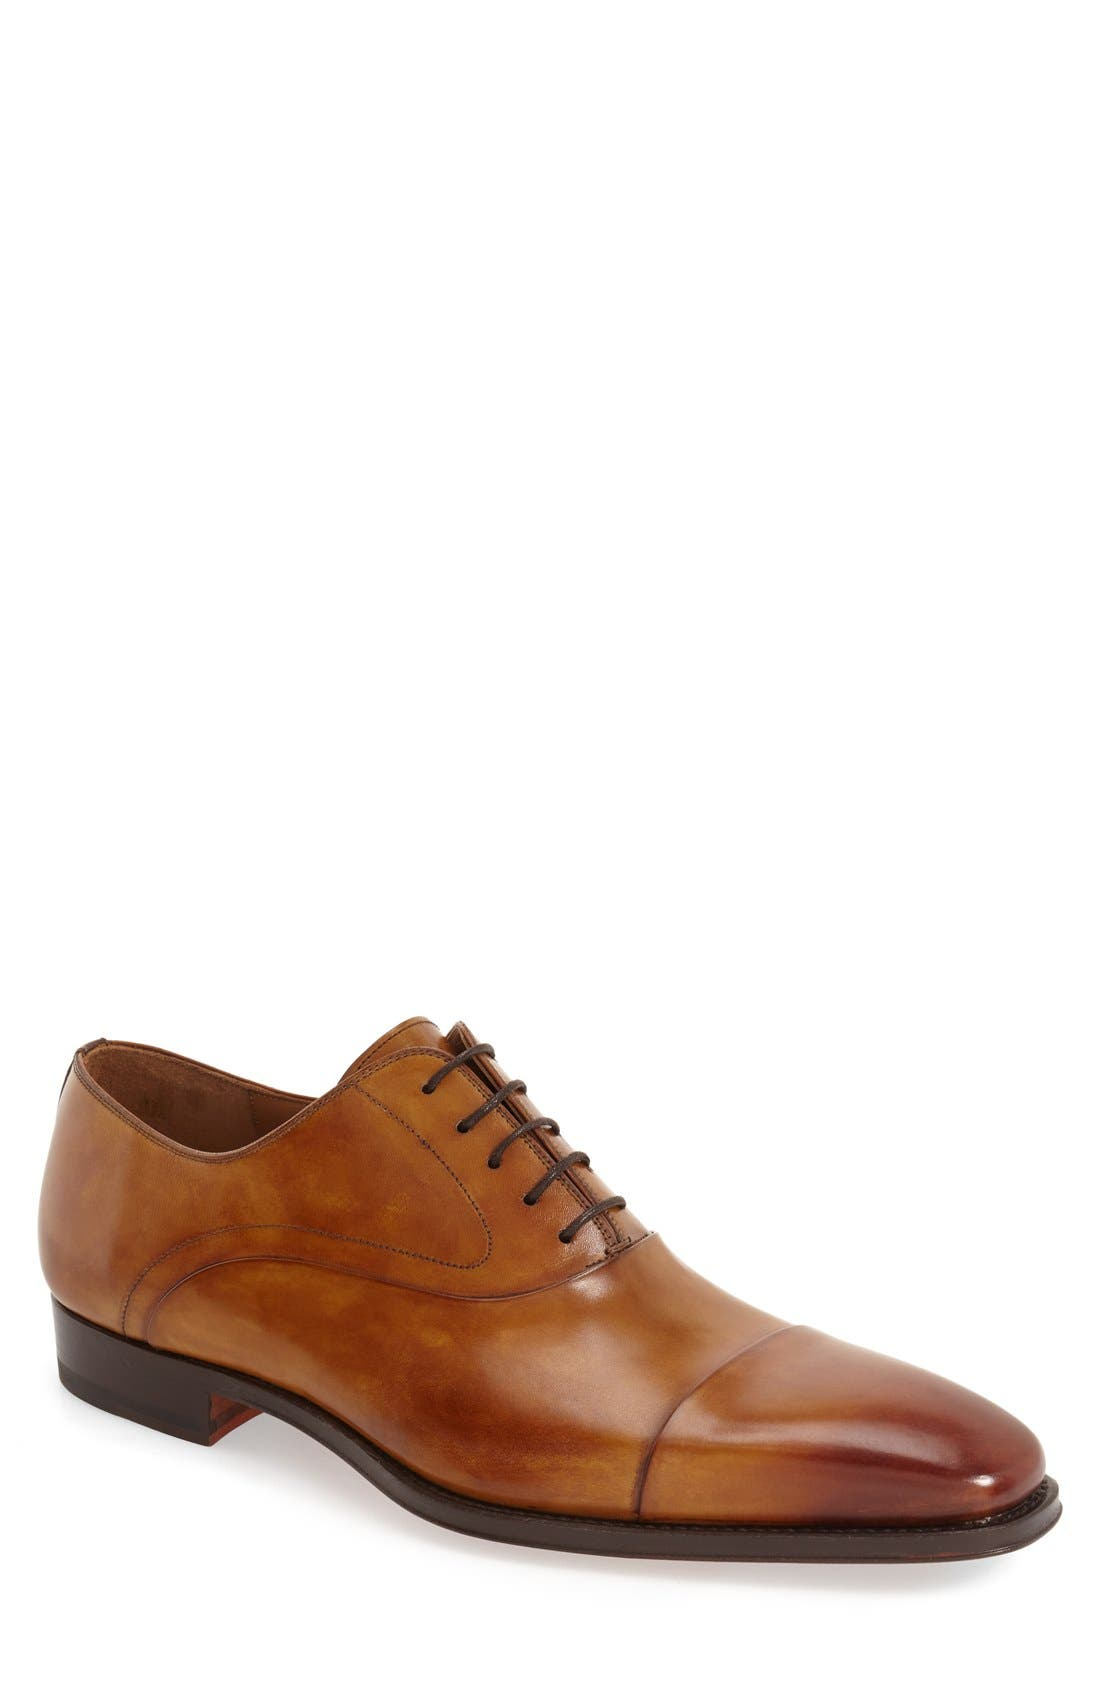 Magnanni Saffron Cap Toe Oxford (Men)